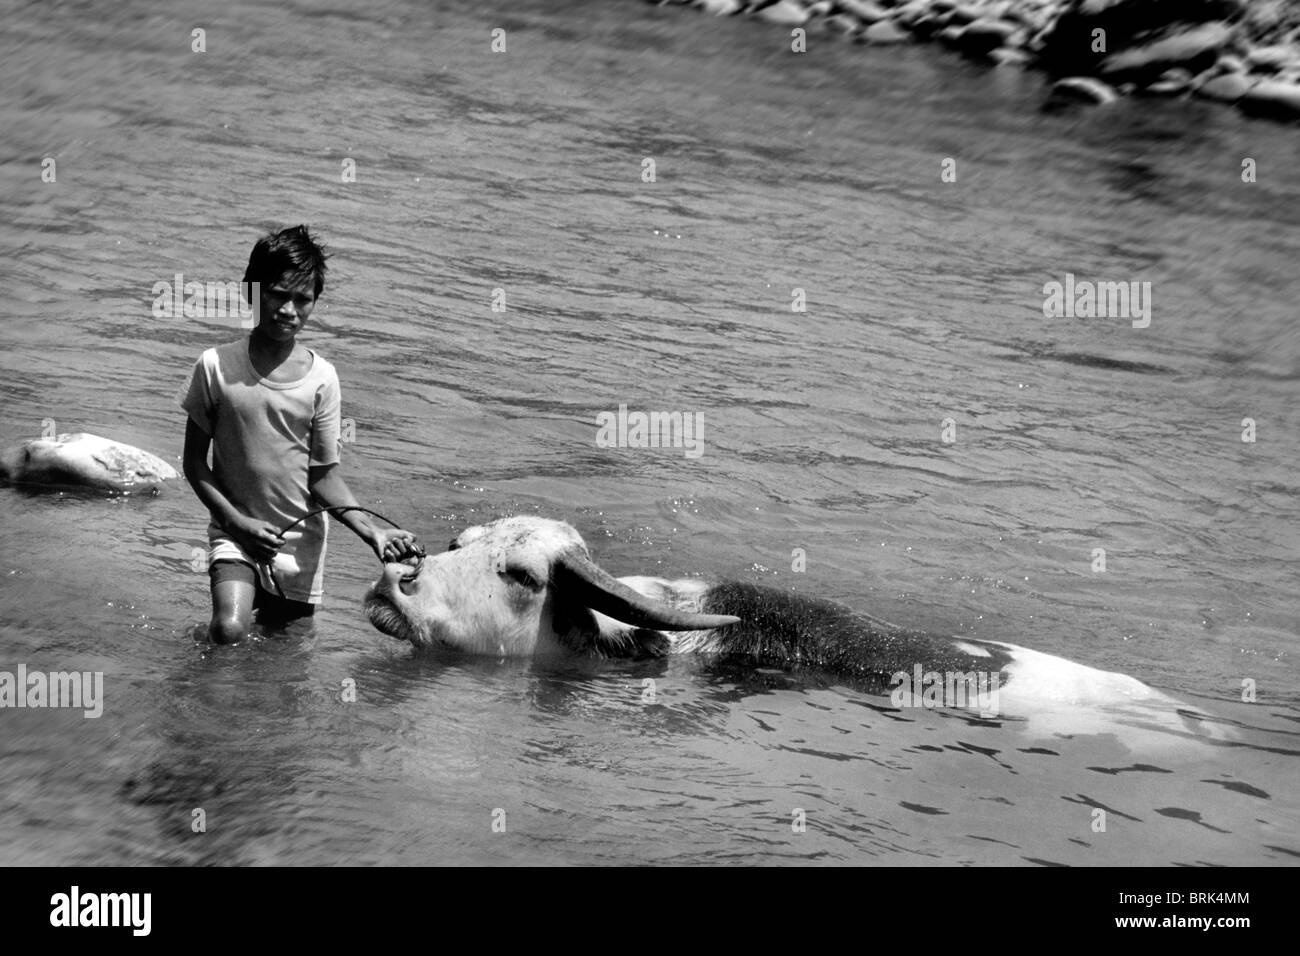 Child labor, young cattle rancher, Rantepao, Sulawesi, Indonesia - Stock Image